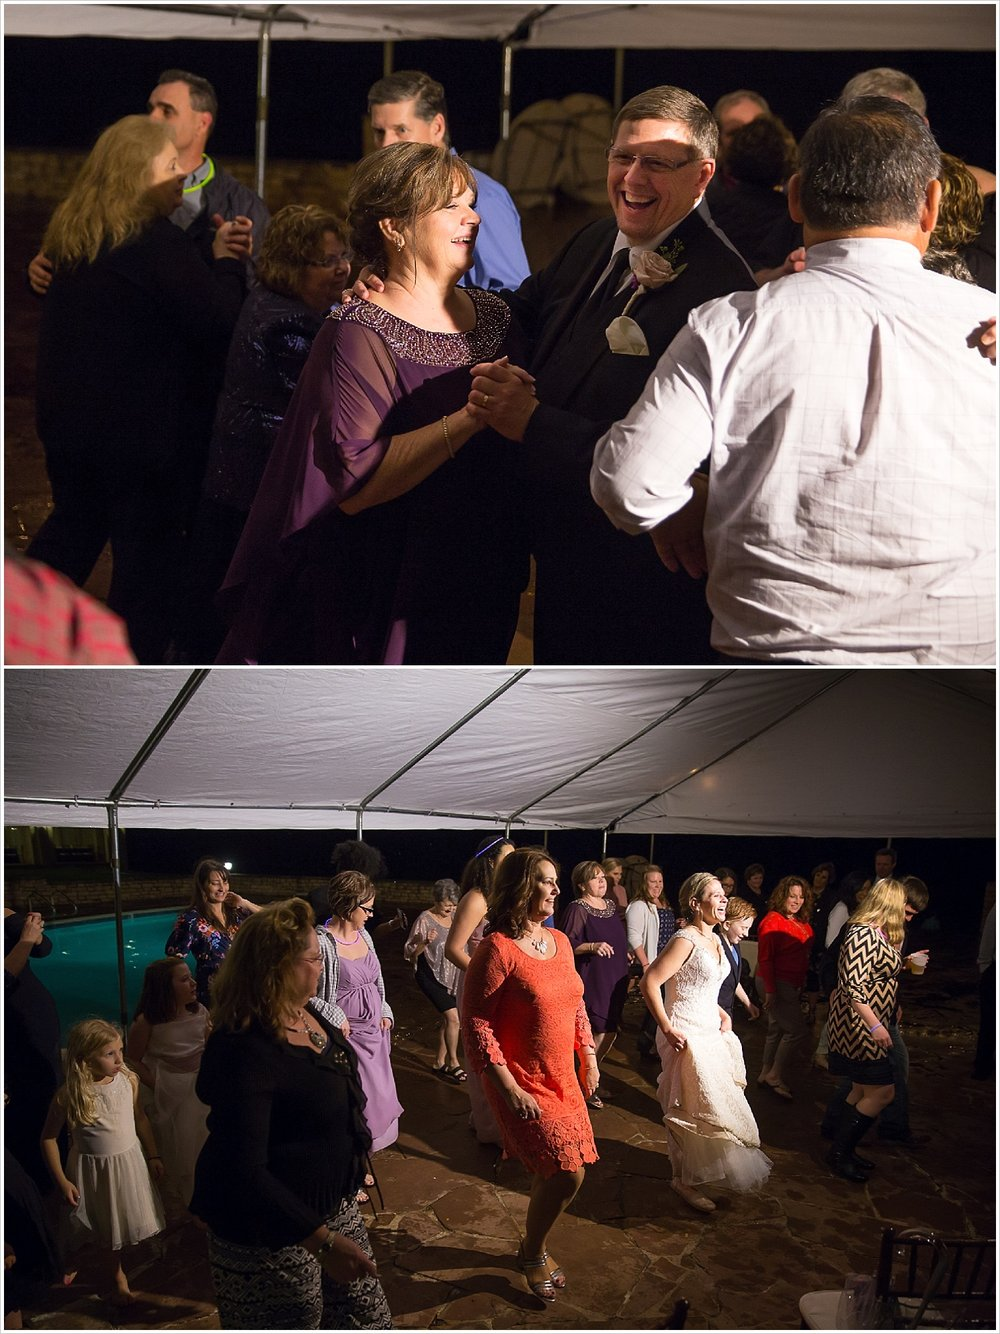 Dancing at rainy wedding reception at La Rio Mansion